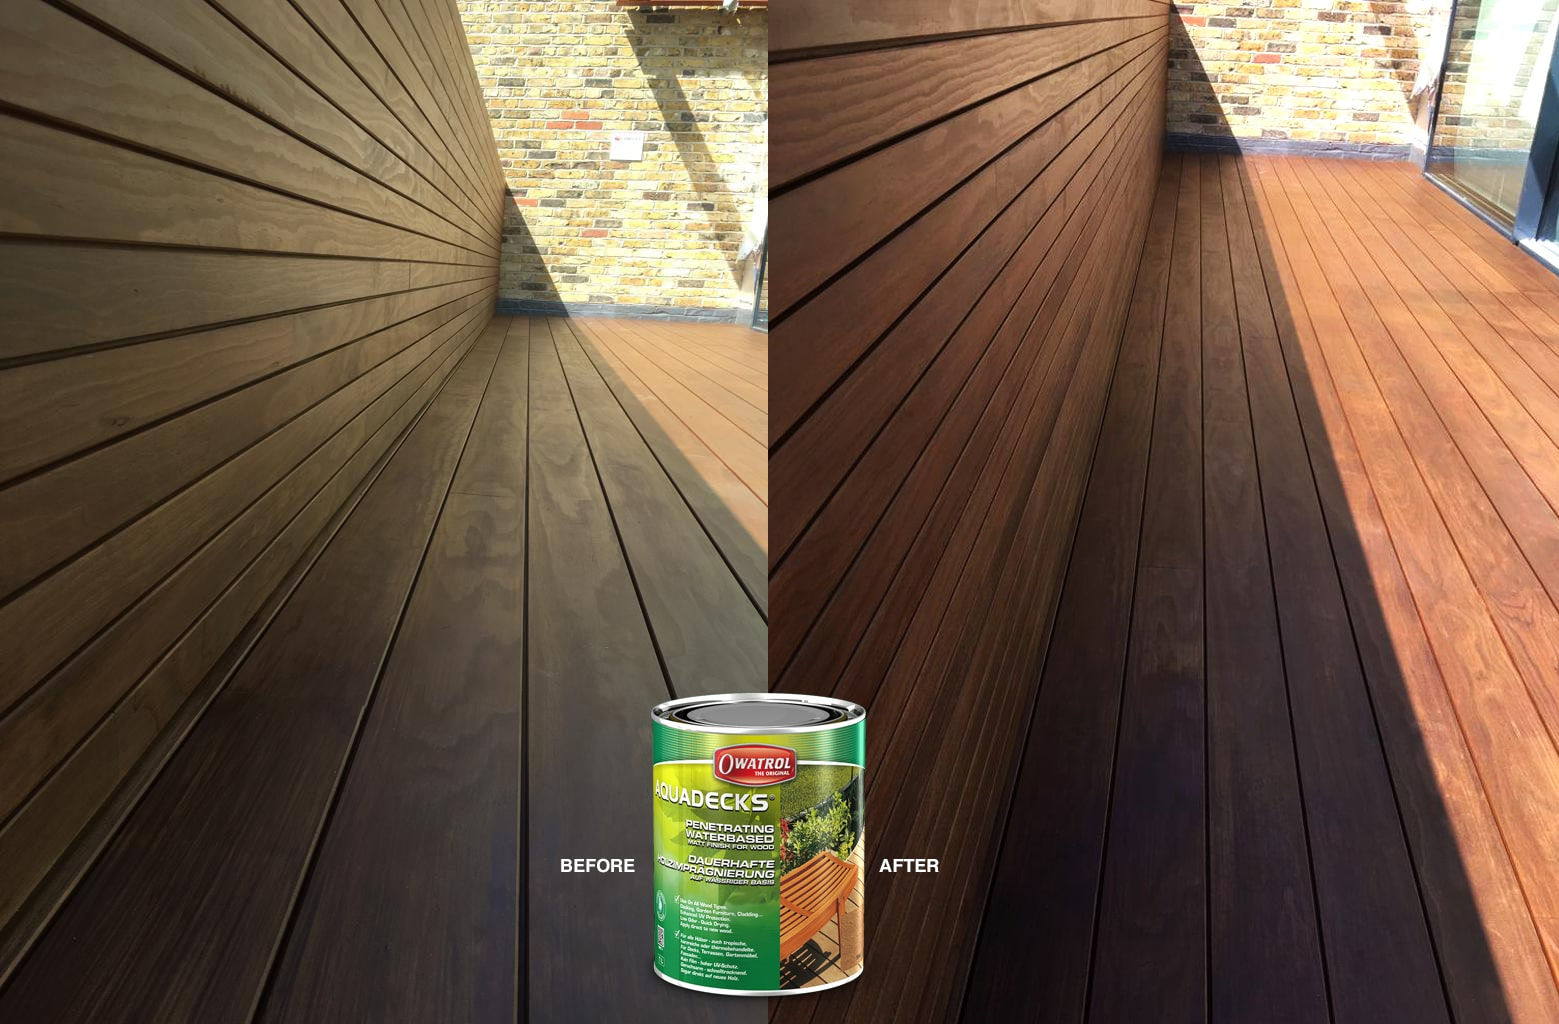 Kebony Magnet Decking before and after using Owatrol Aquadecks